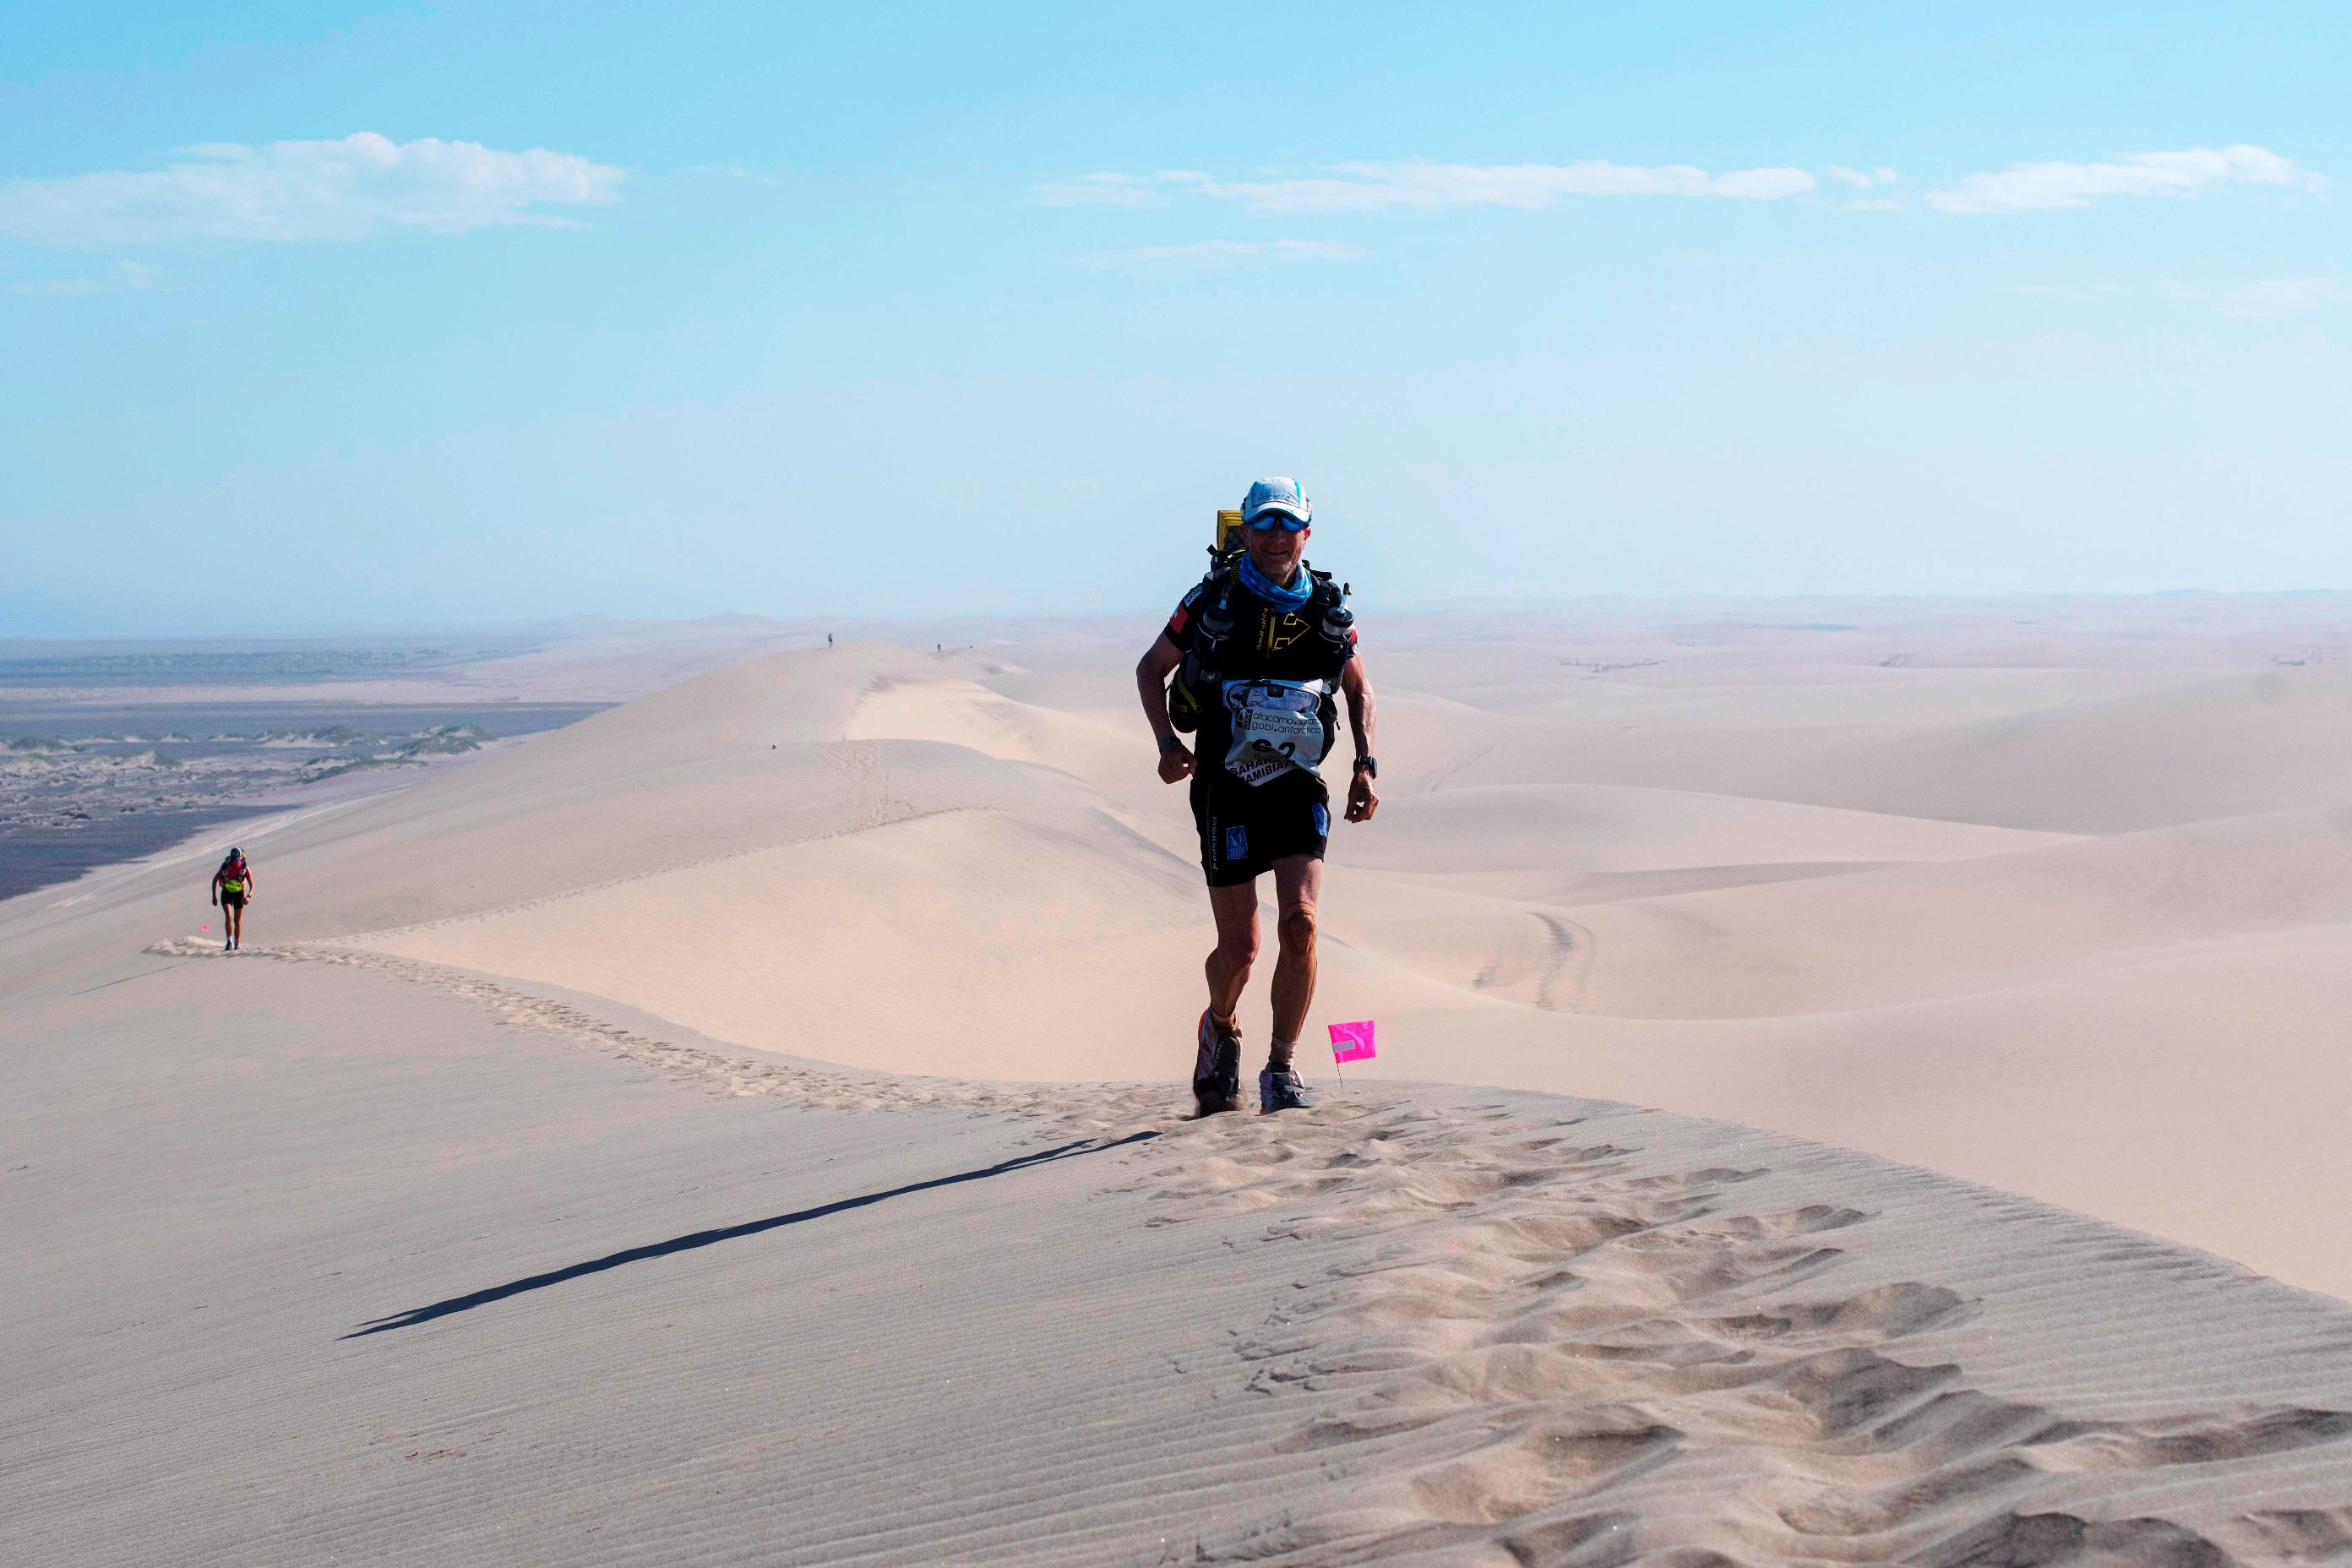 On Top of the Highest Dunes in the World